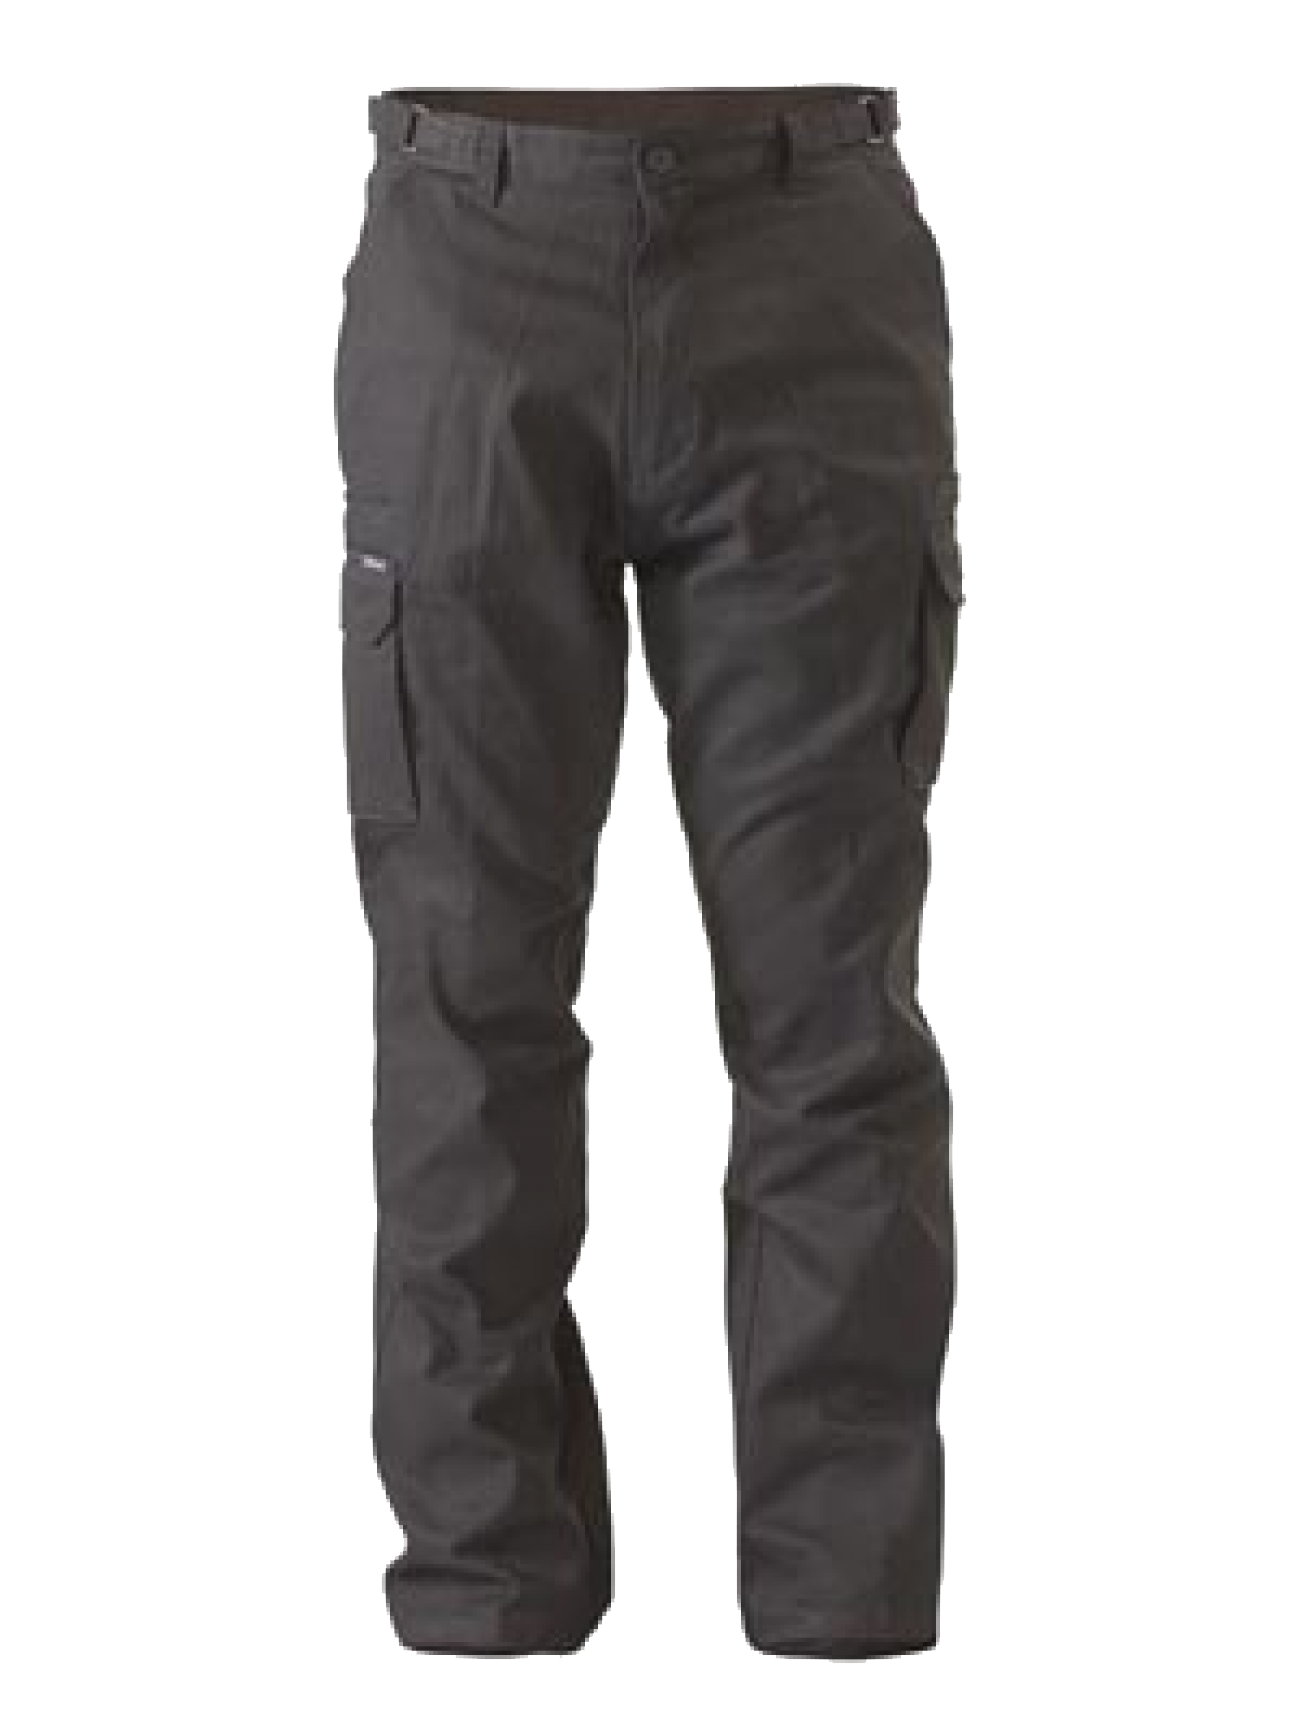 Cargo Pant Picture PNG Image